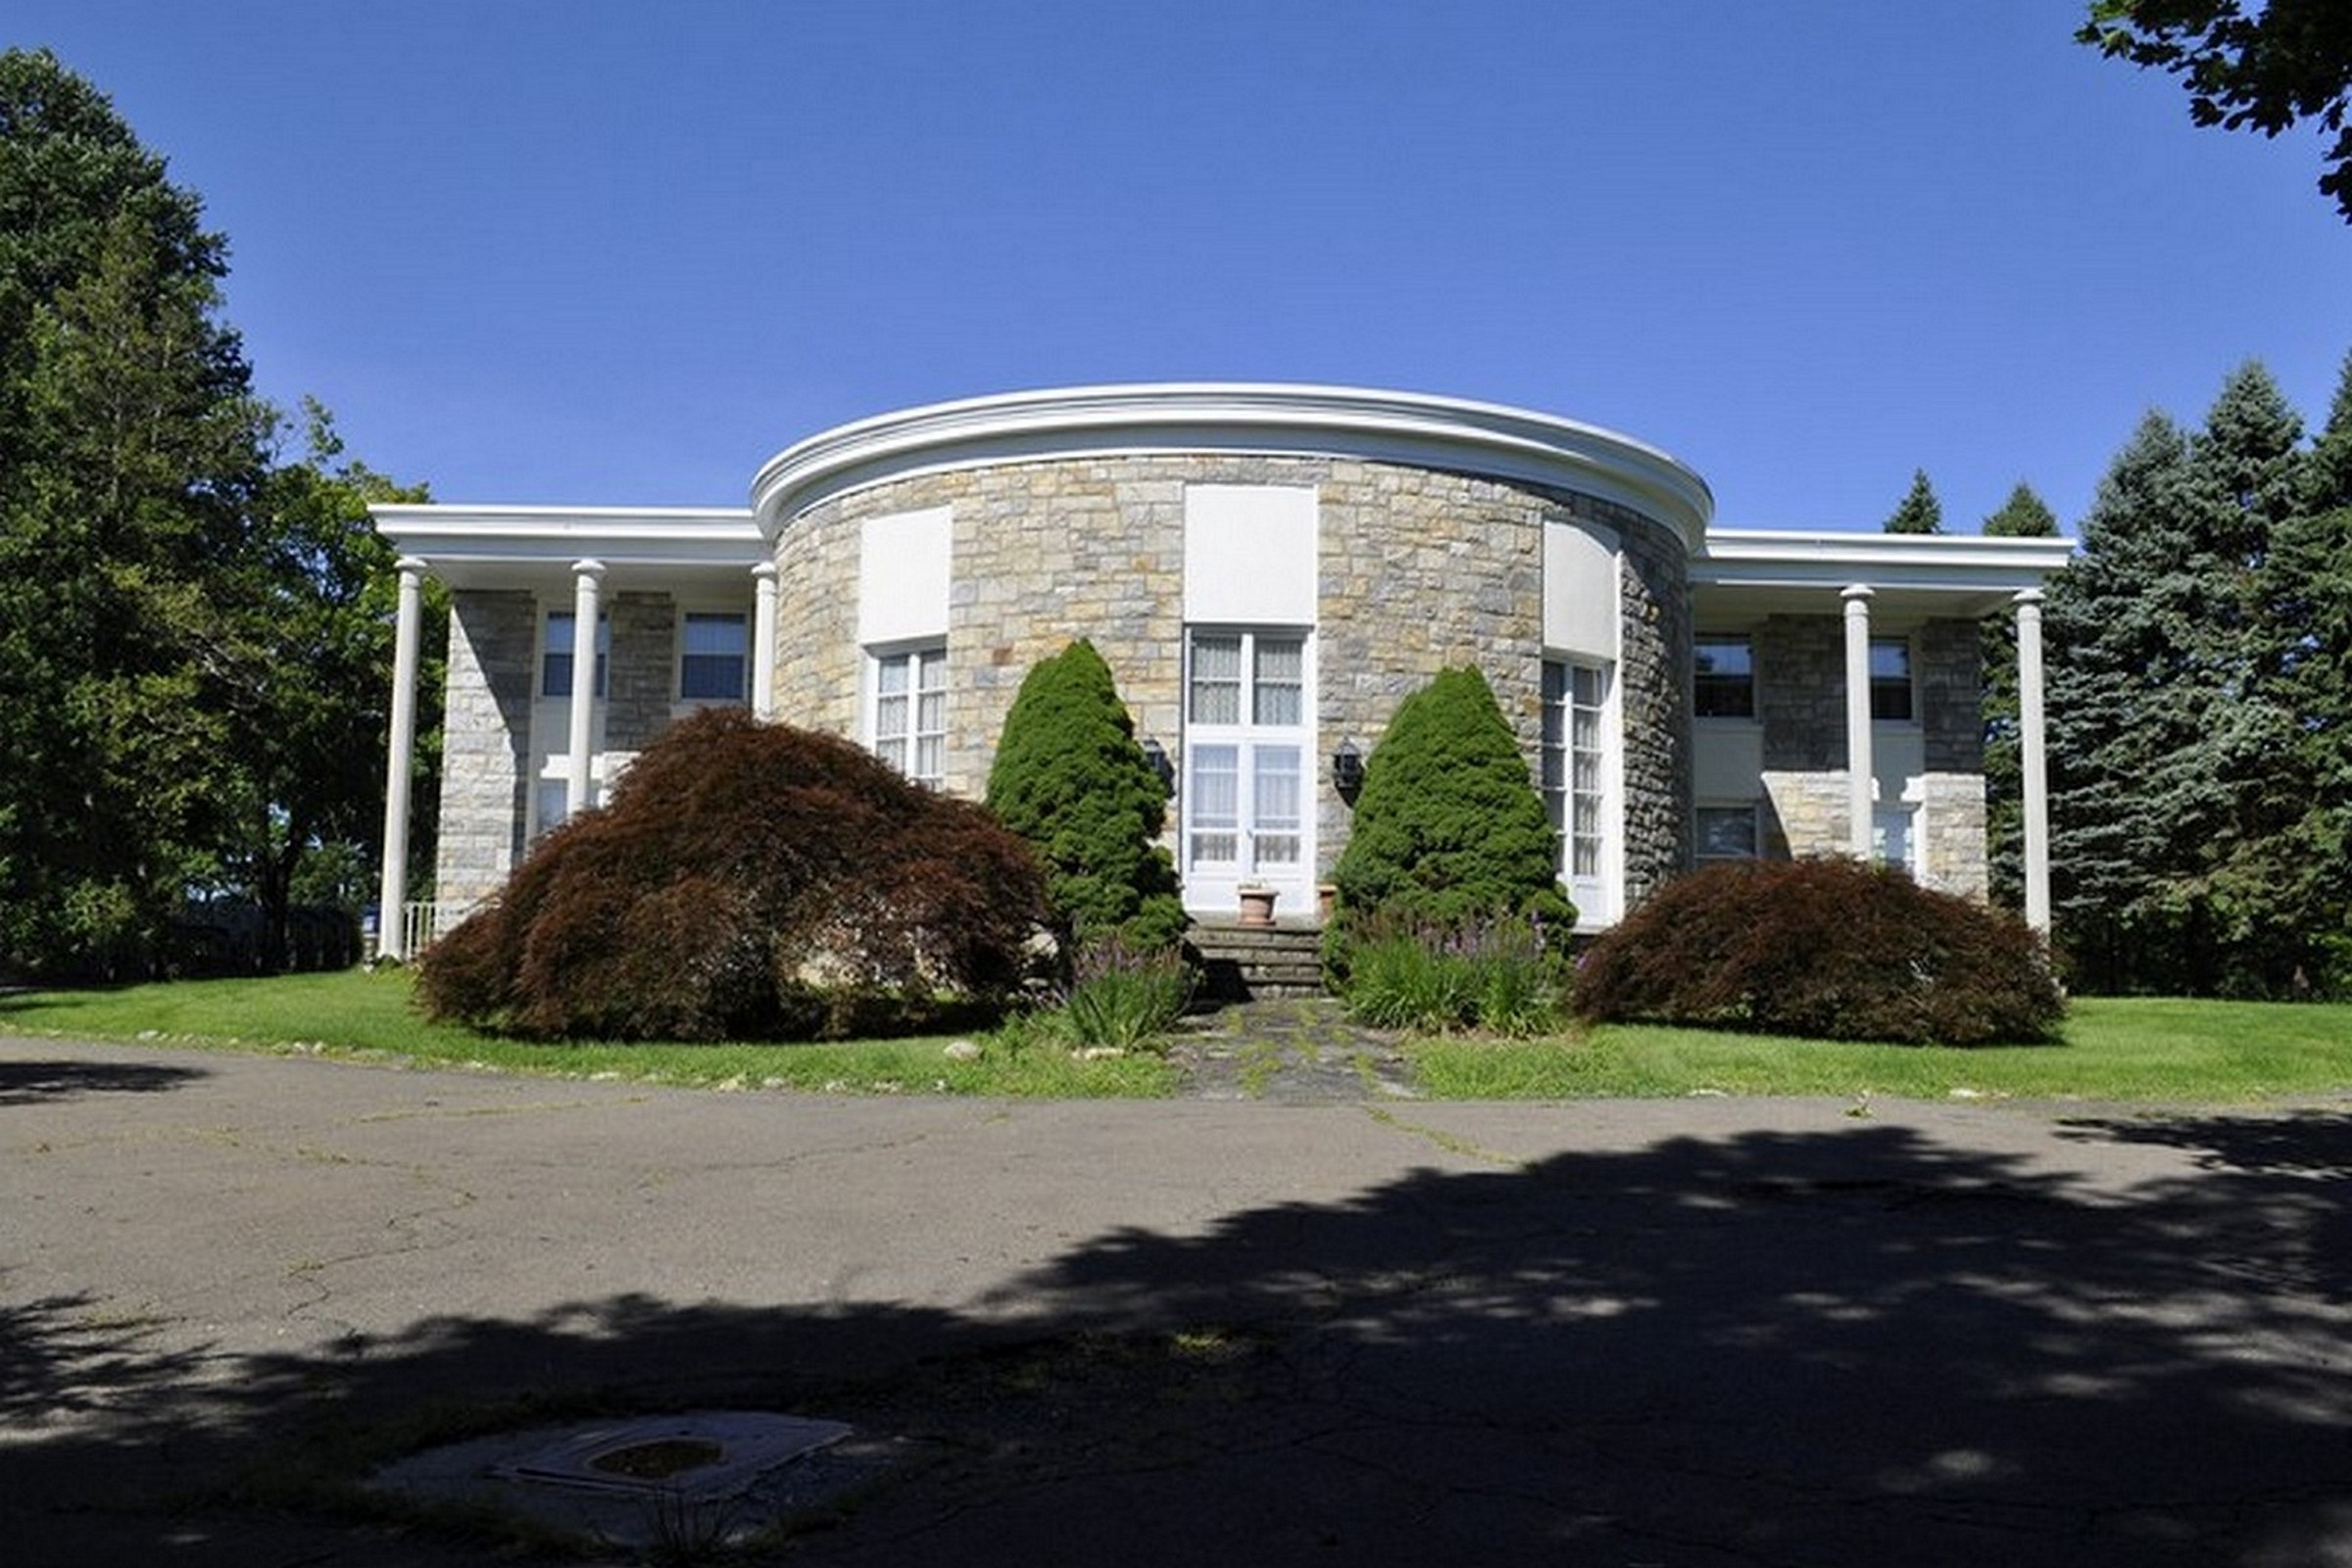 Single Family Home for Sale at Lake Front Estate 1 North Gate Road Carmel, New York 10512 United States